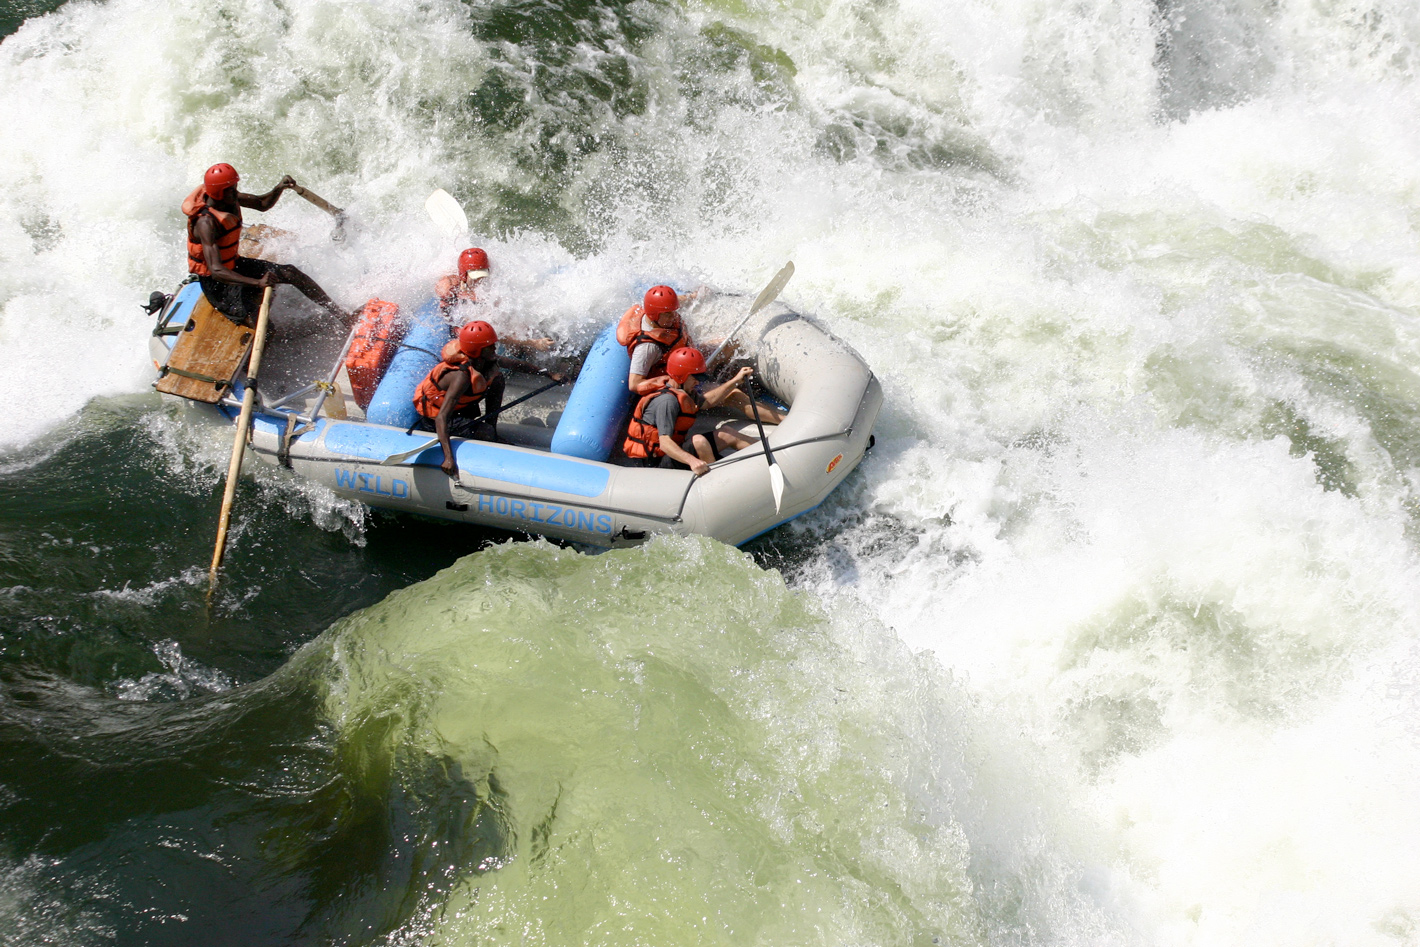 Whitewater rafting in Zambezi rapids